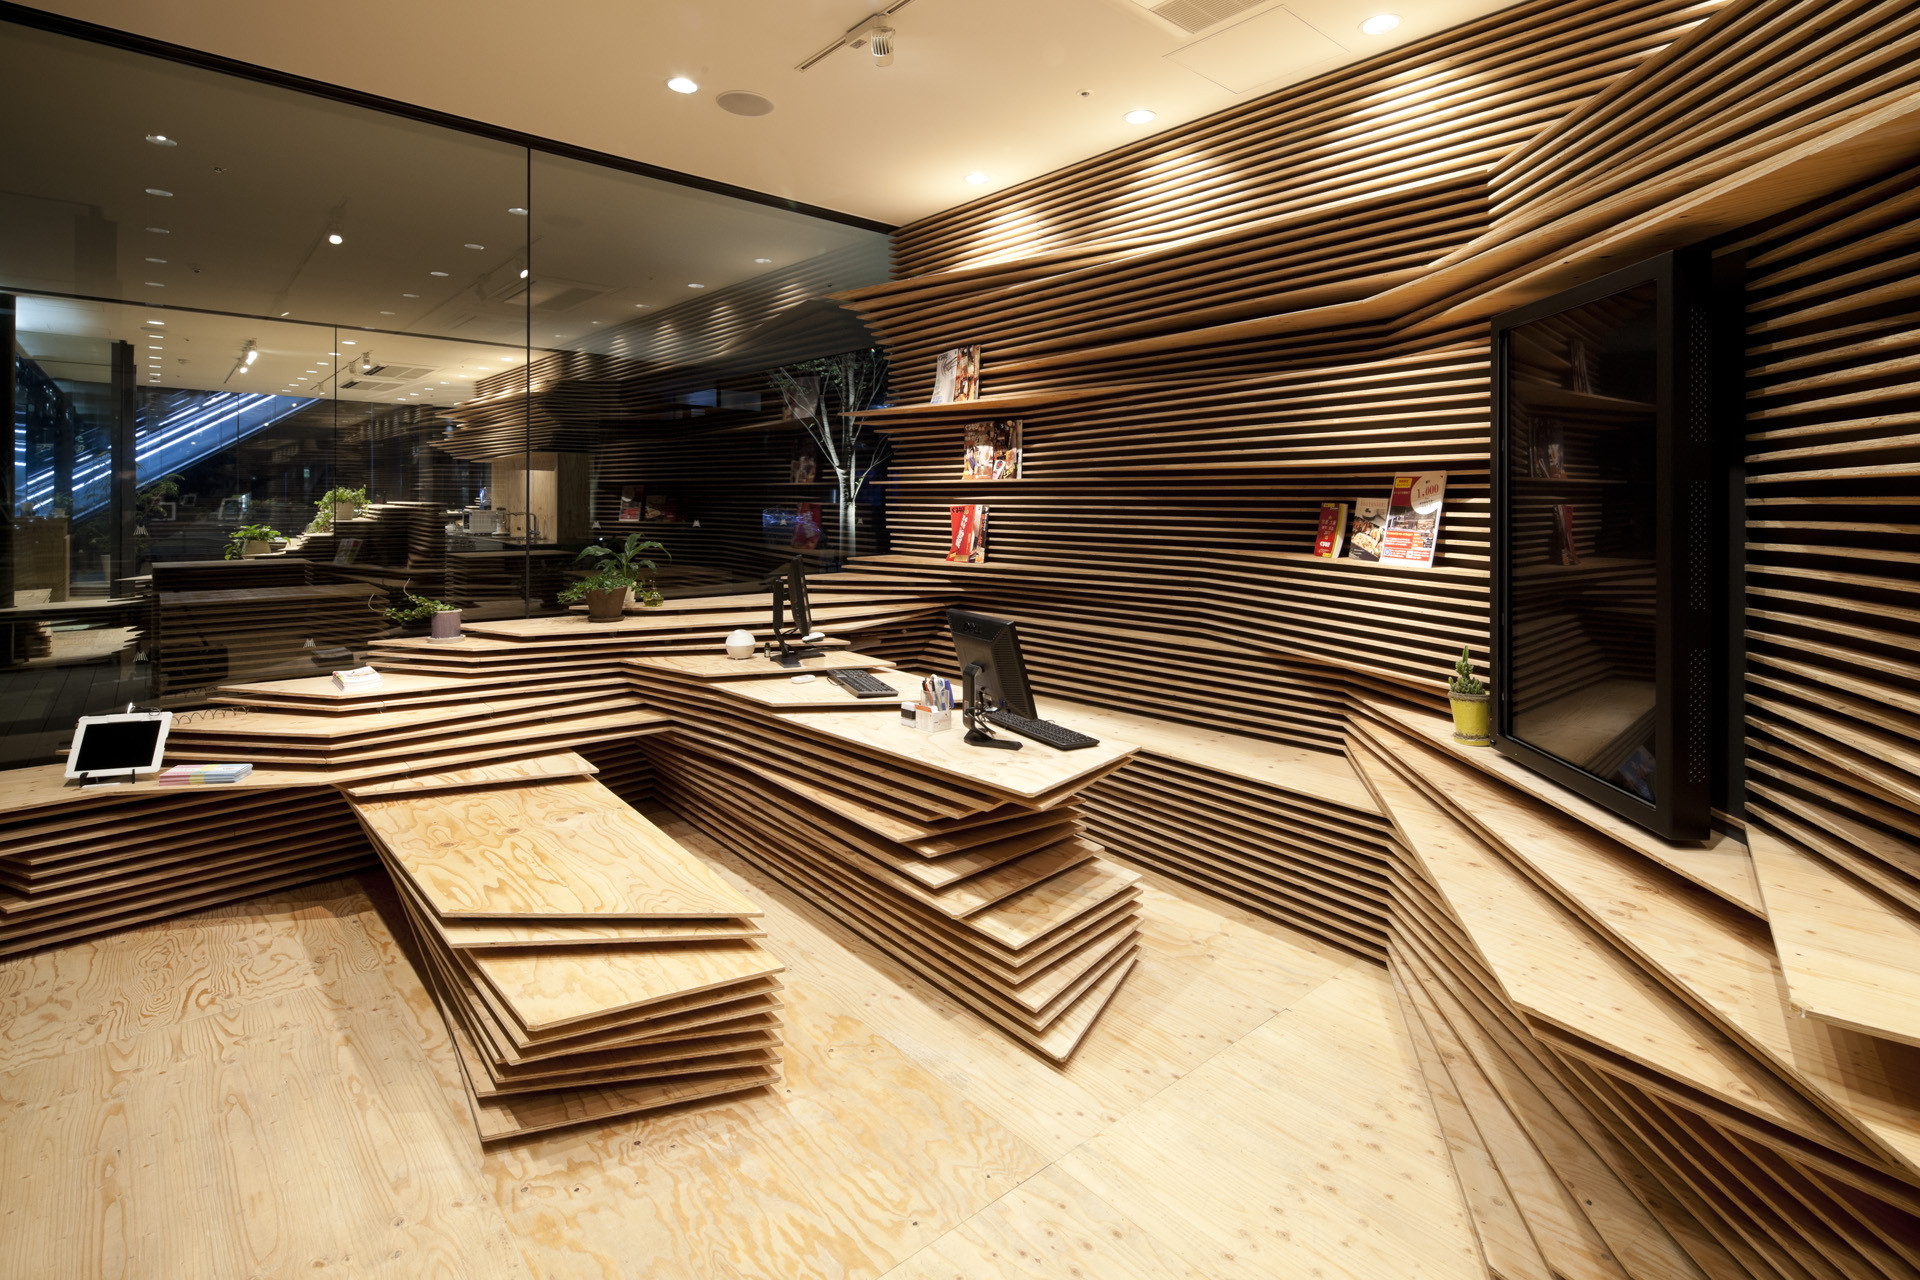 Shun shoku lounge by guranavi kengo kuma associates Wood architecture definition